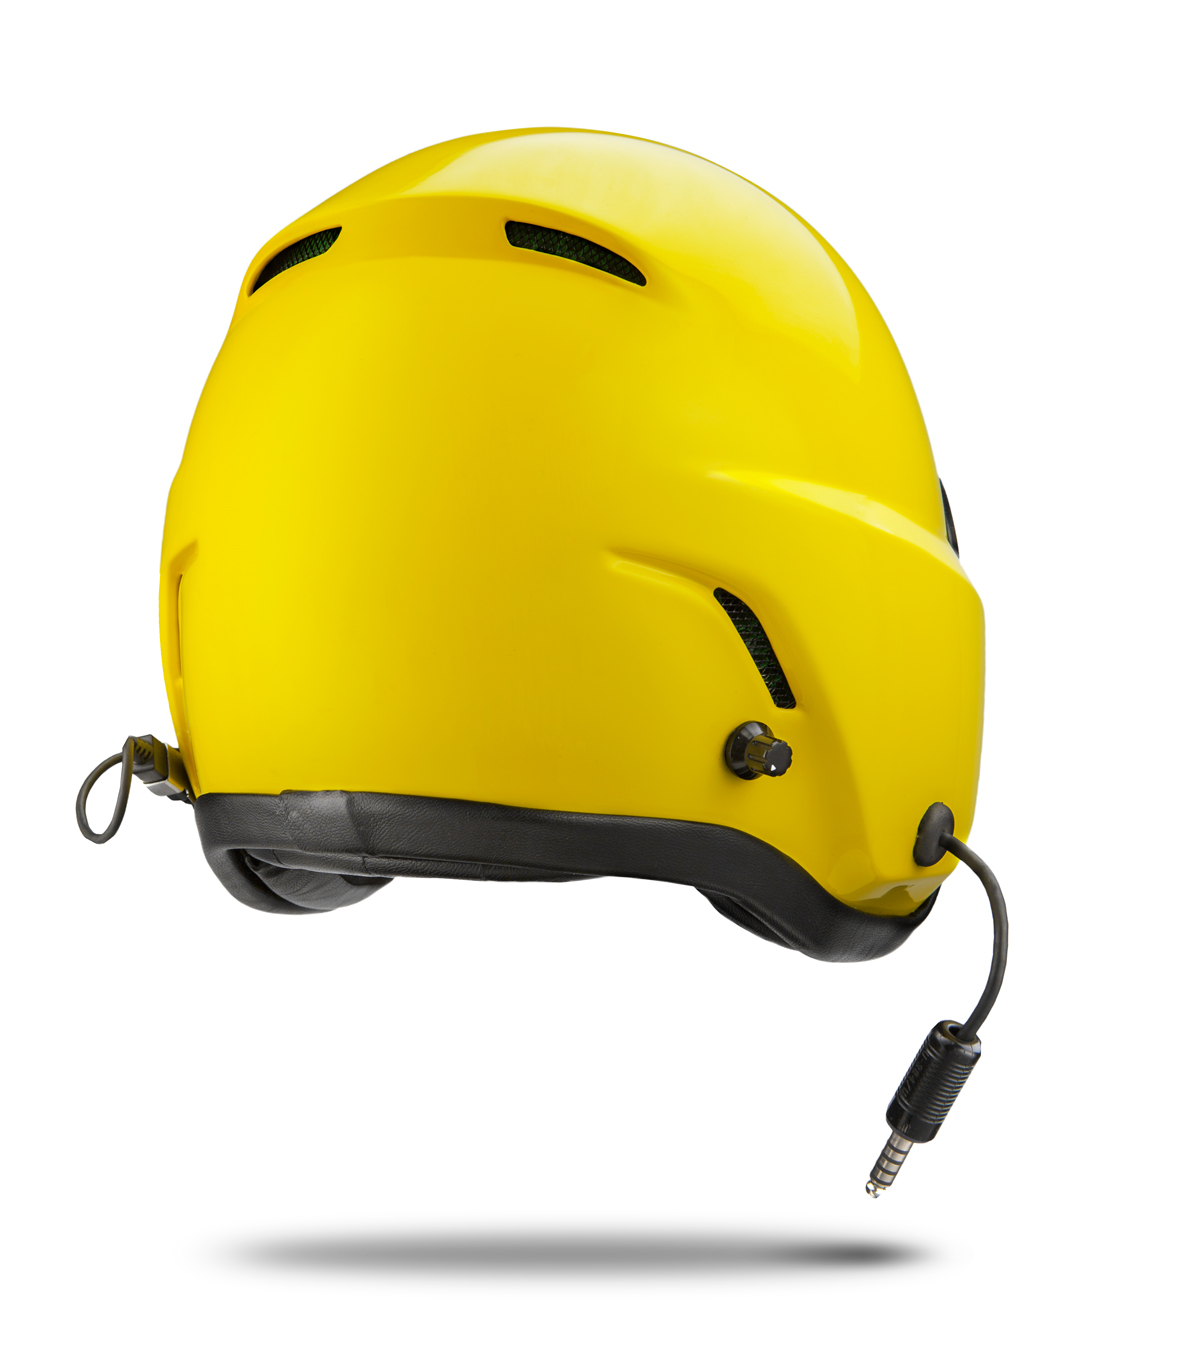 lift_av_helmet_back_IMG_2466